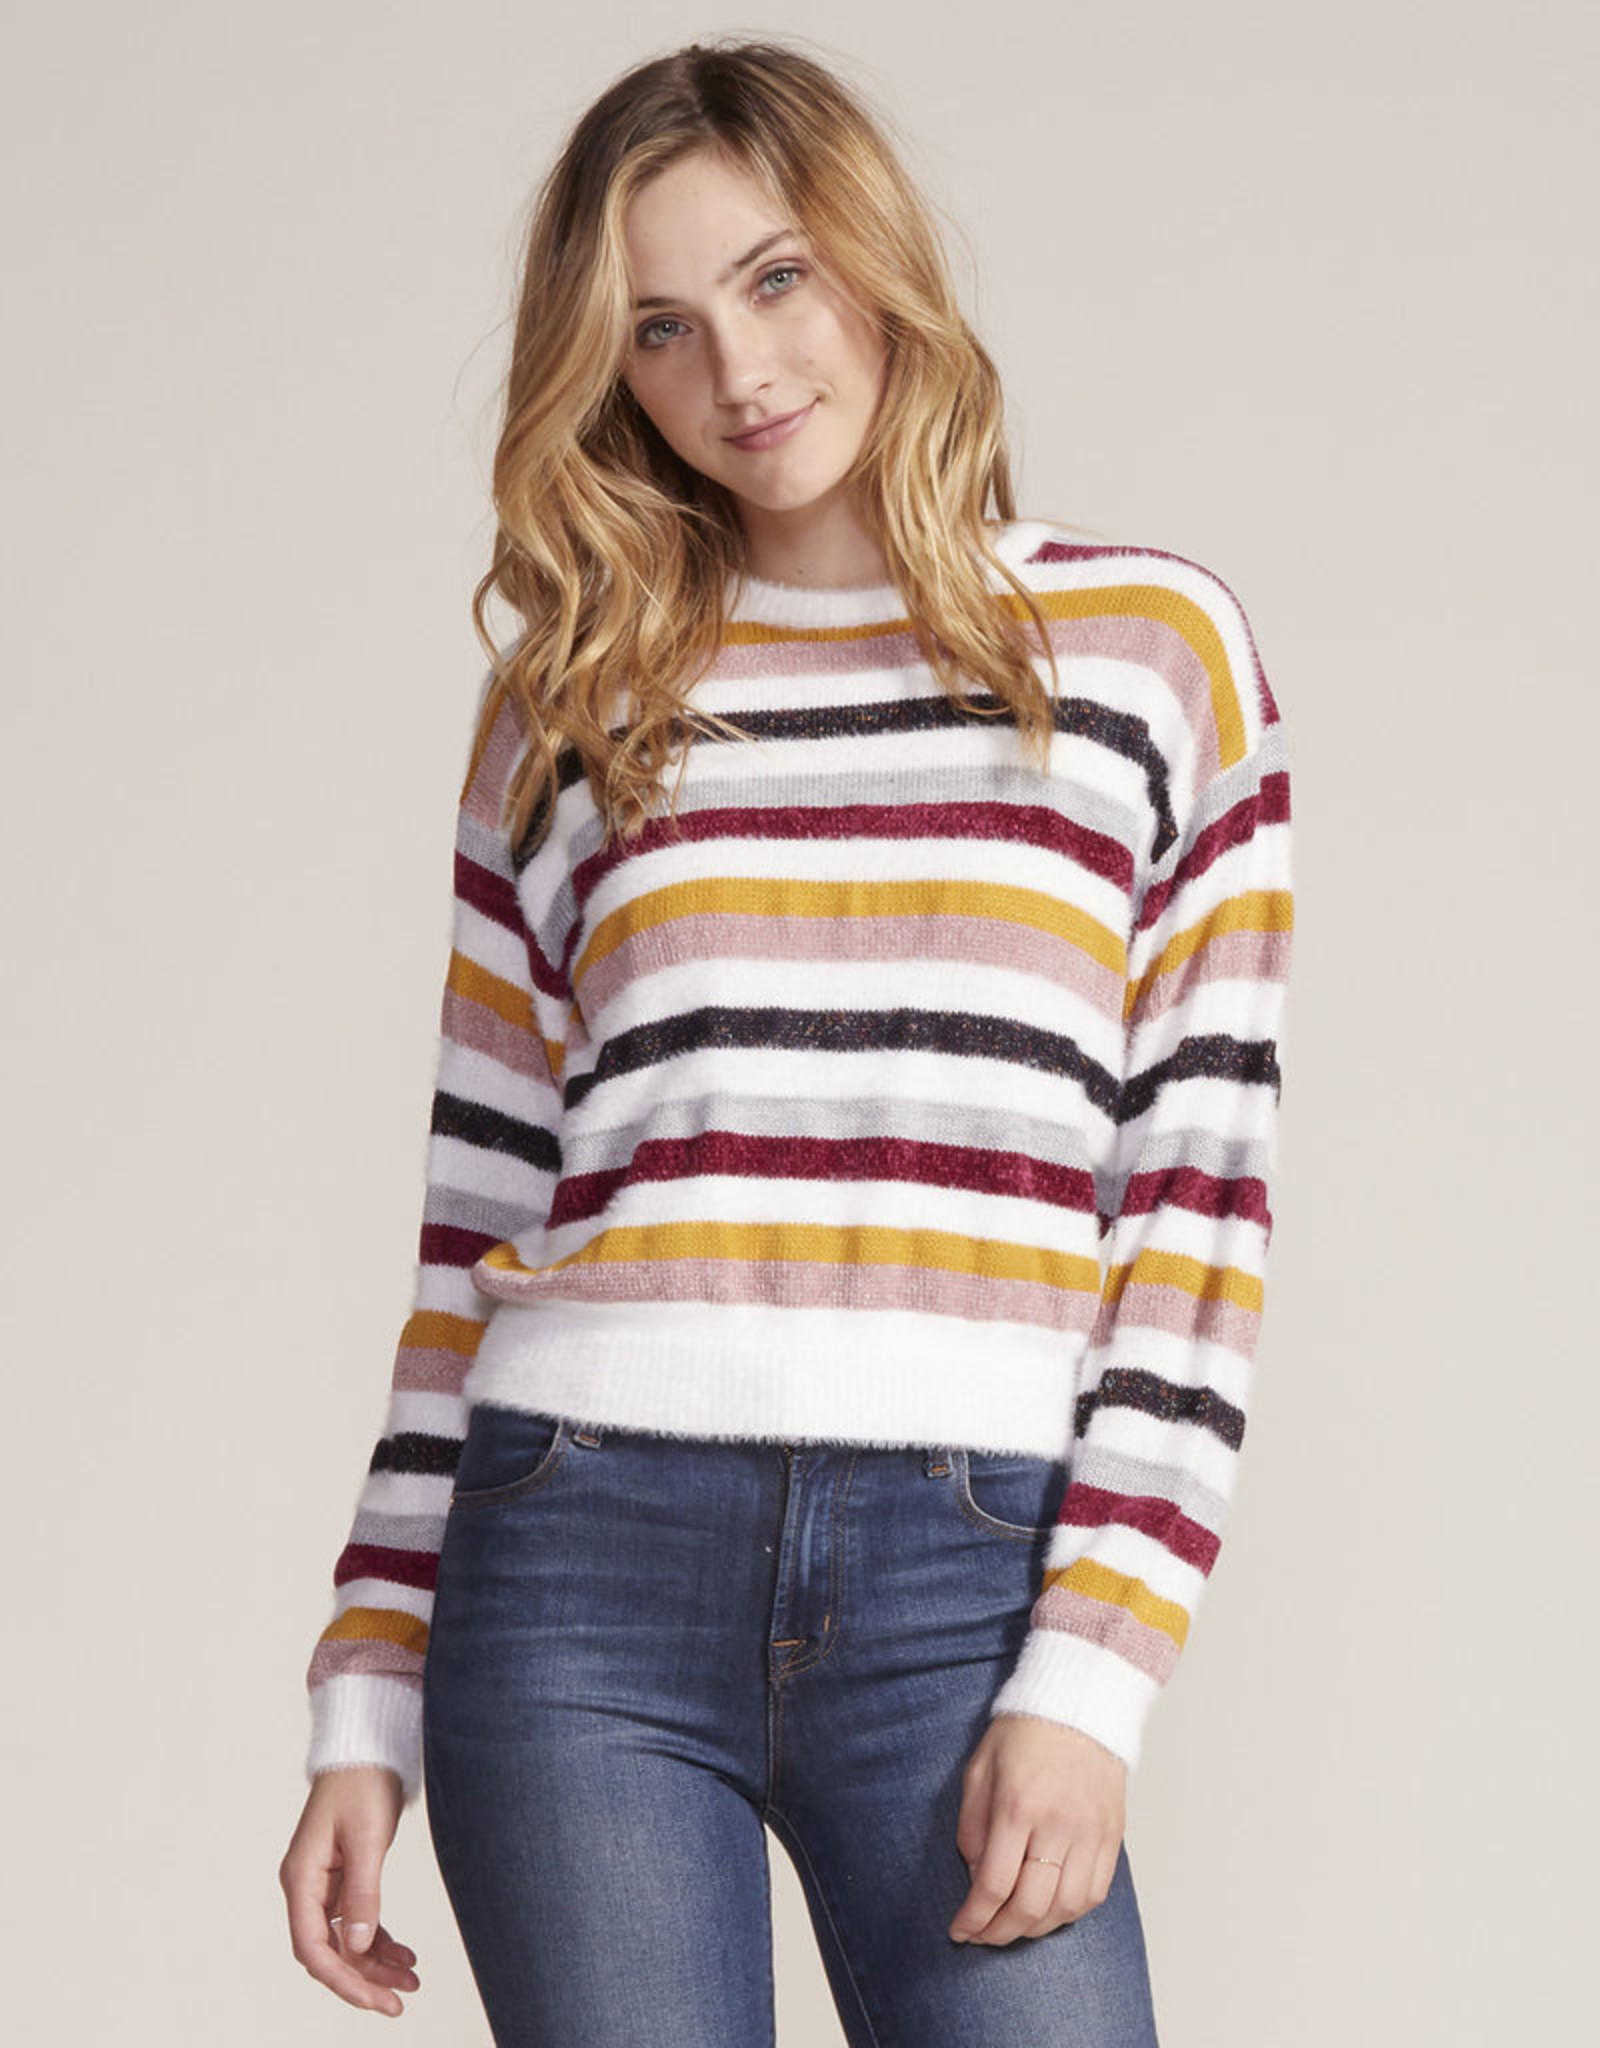 Cupcakes and Cashmere Rach Crewneck Sweater